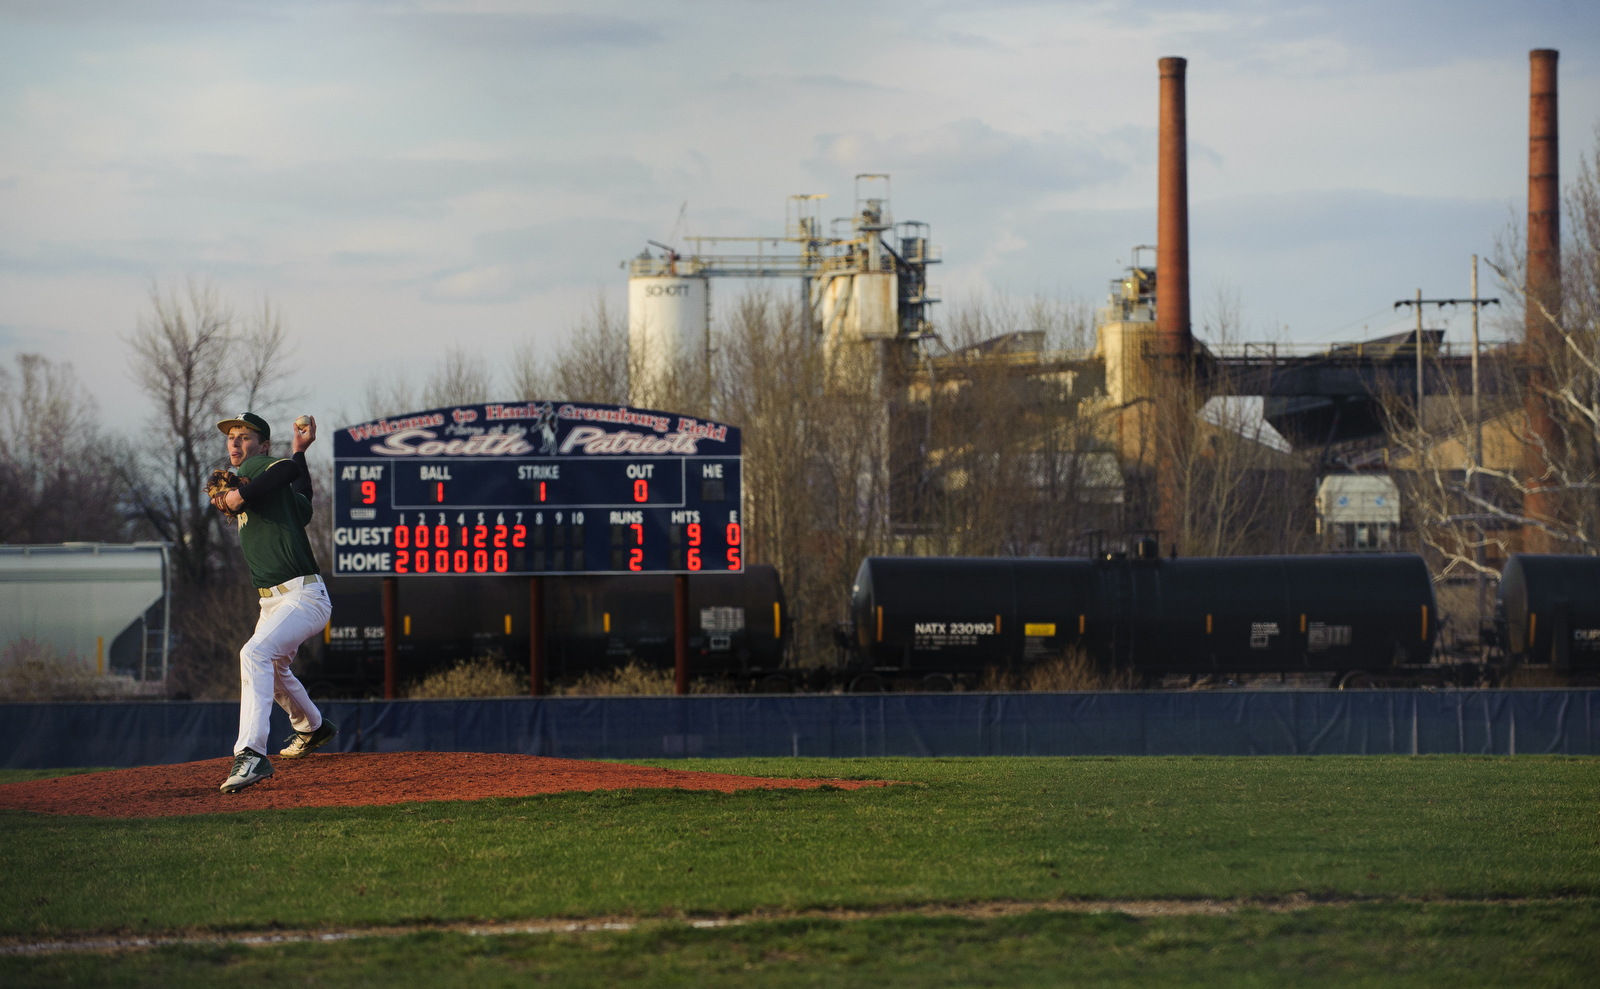 """Coal mines and power plants are a common landscape for West Virginia. In this game against Parkersburg South, Adam Luehrman pitched all seven innings, which isn't too common in high school baseball. After the game, Coach Stewart gave the game ball to Luehrman and asked him, """"When was the last time you pitched a whole game?"""" Adam responded saying, """"I'm not sure but probably eighth grade."""""""